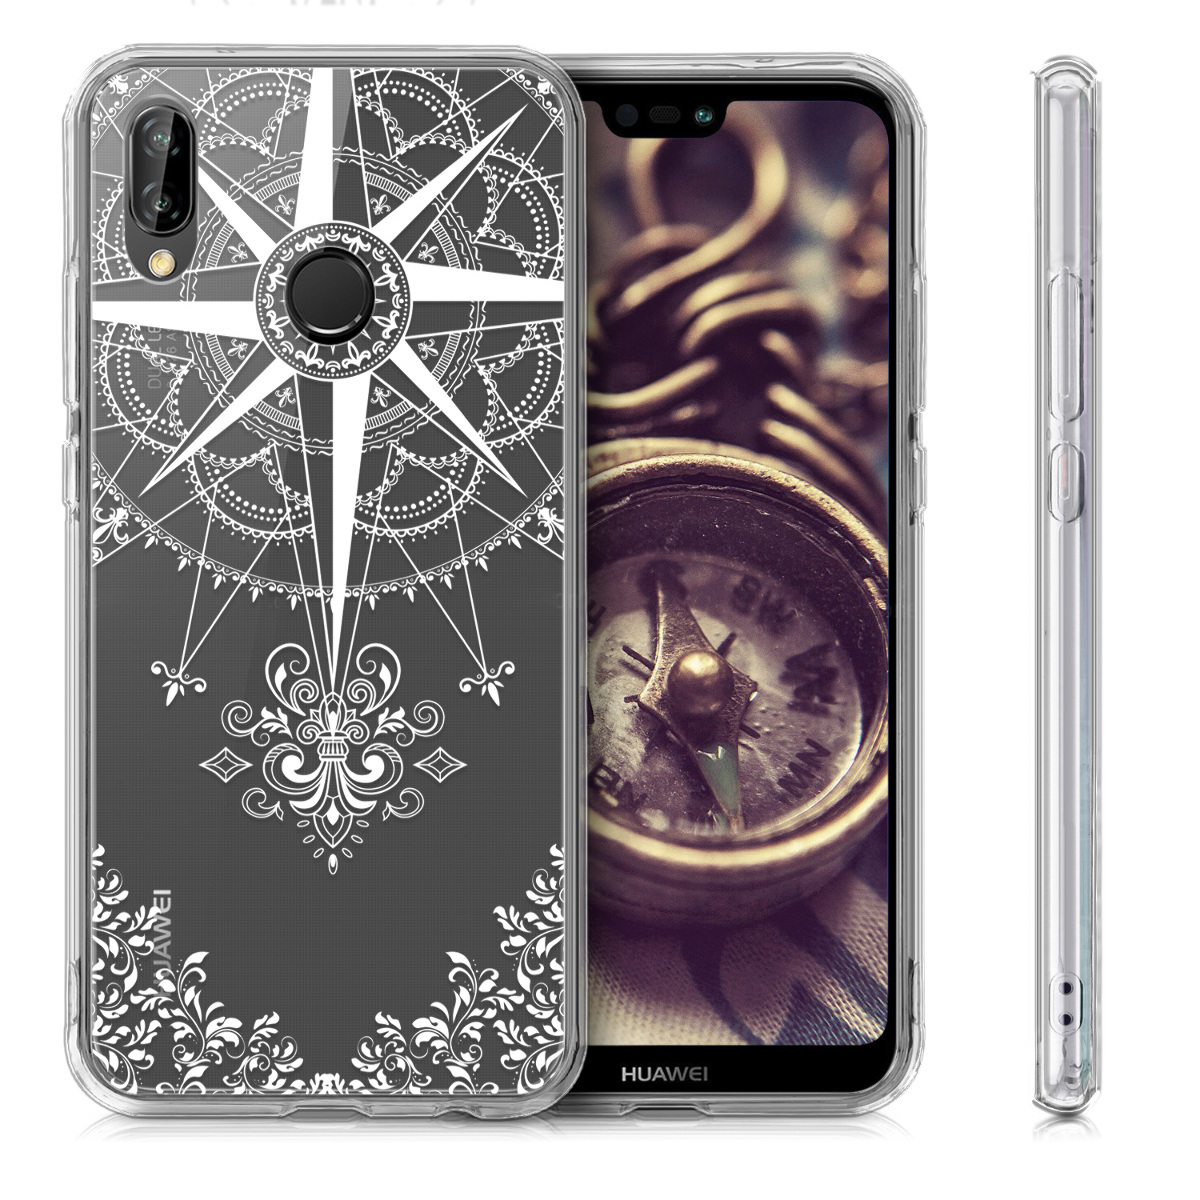 coque en silicone pour huawei p20 lite ebay. Black Bedroom Furniture Sets. Home Design Ideas